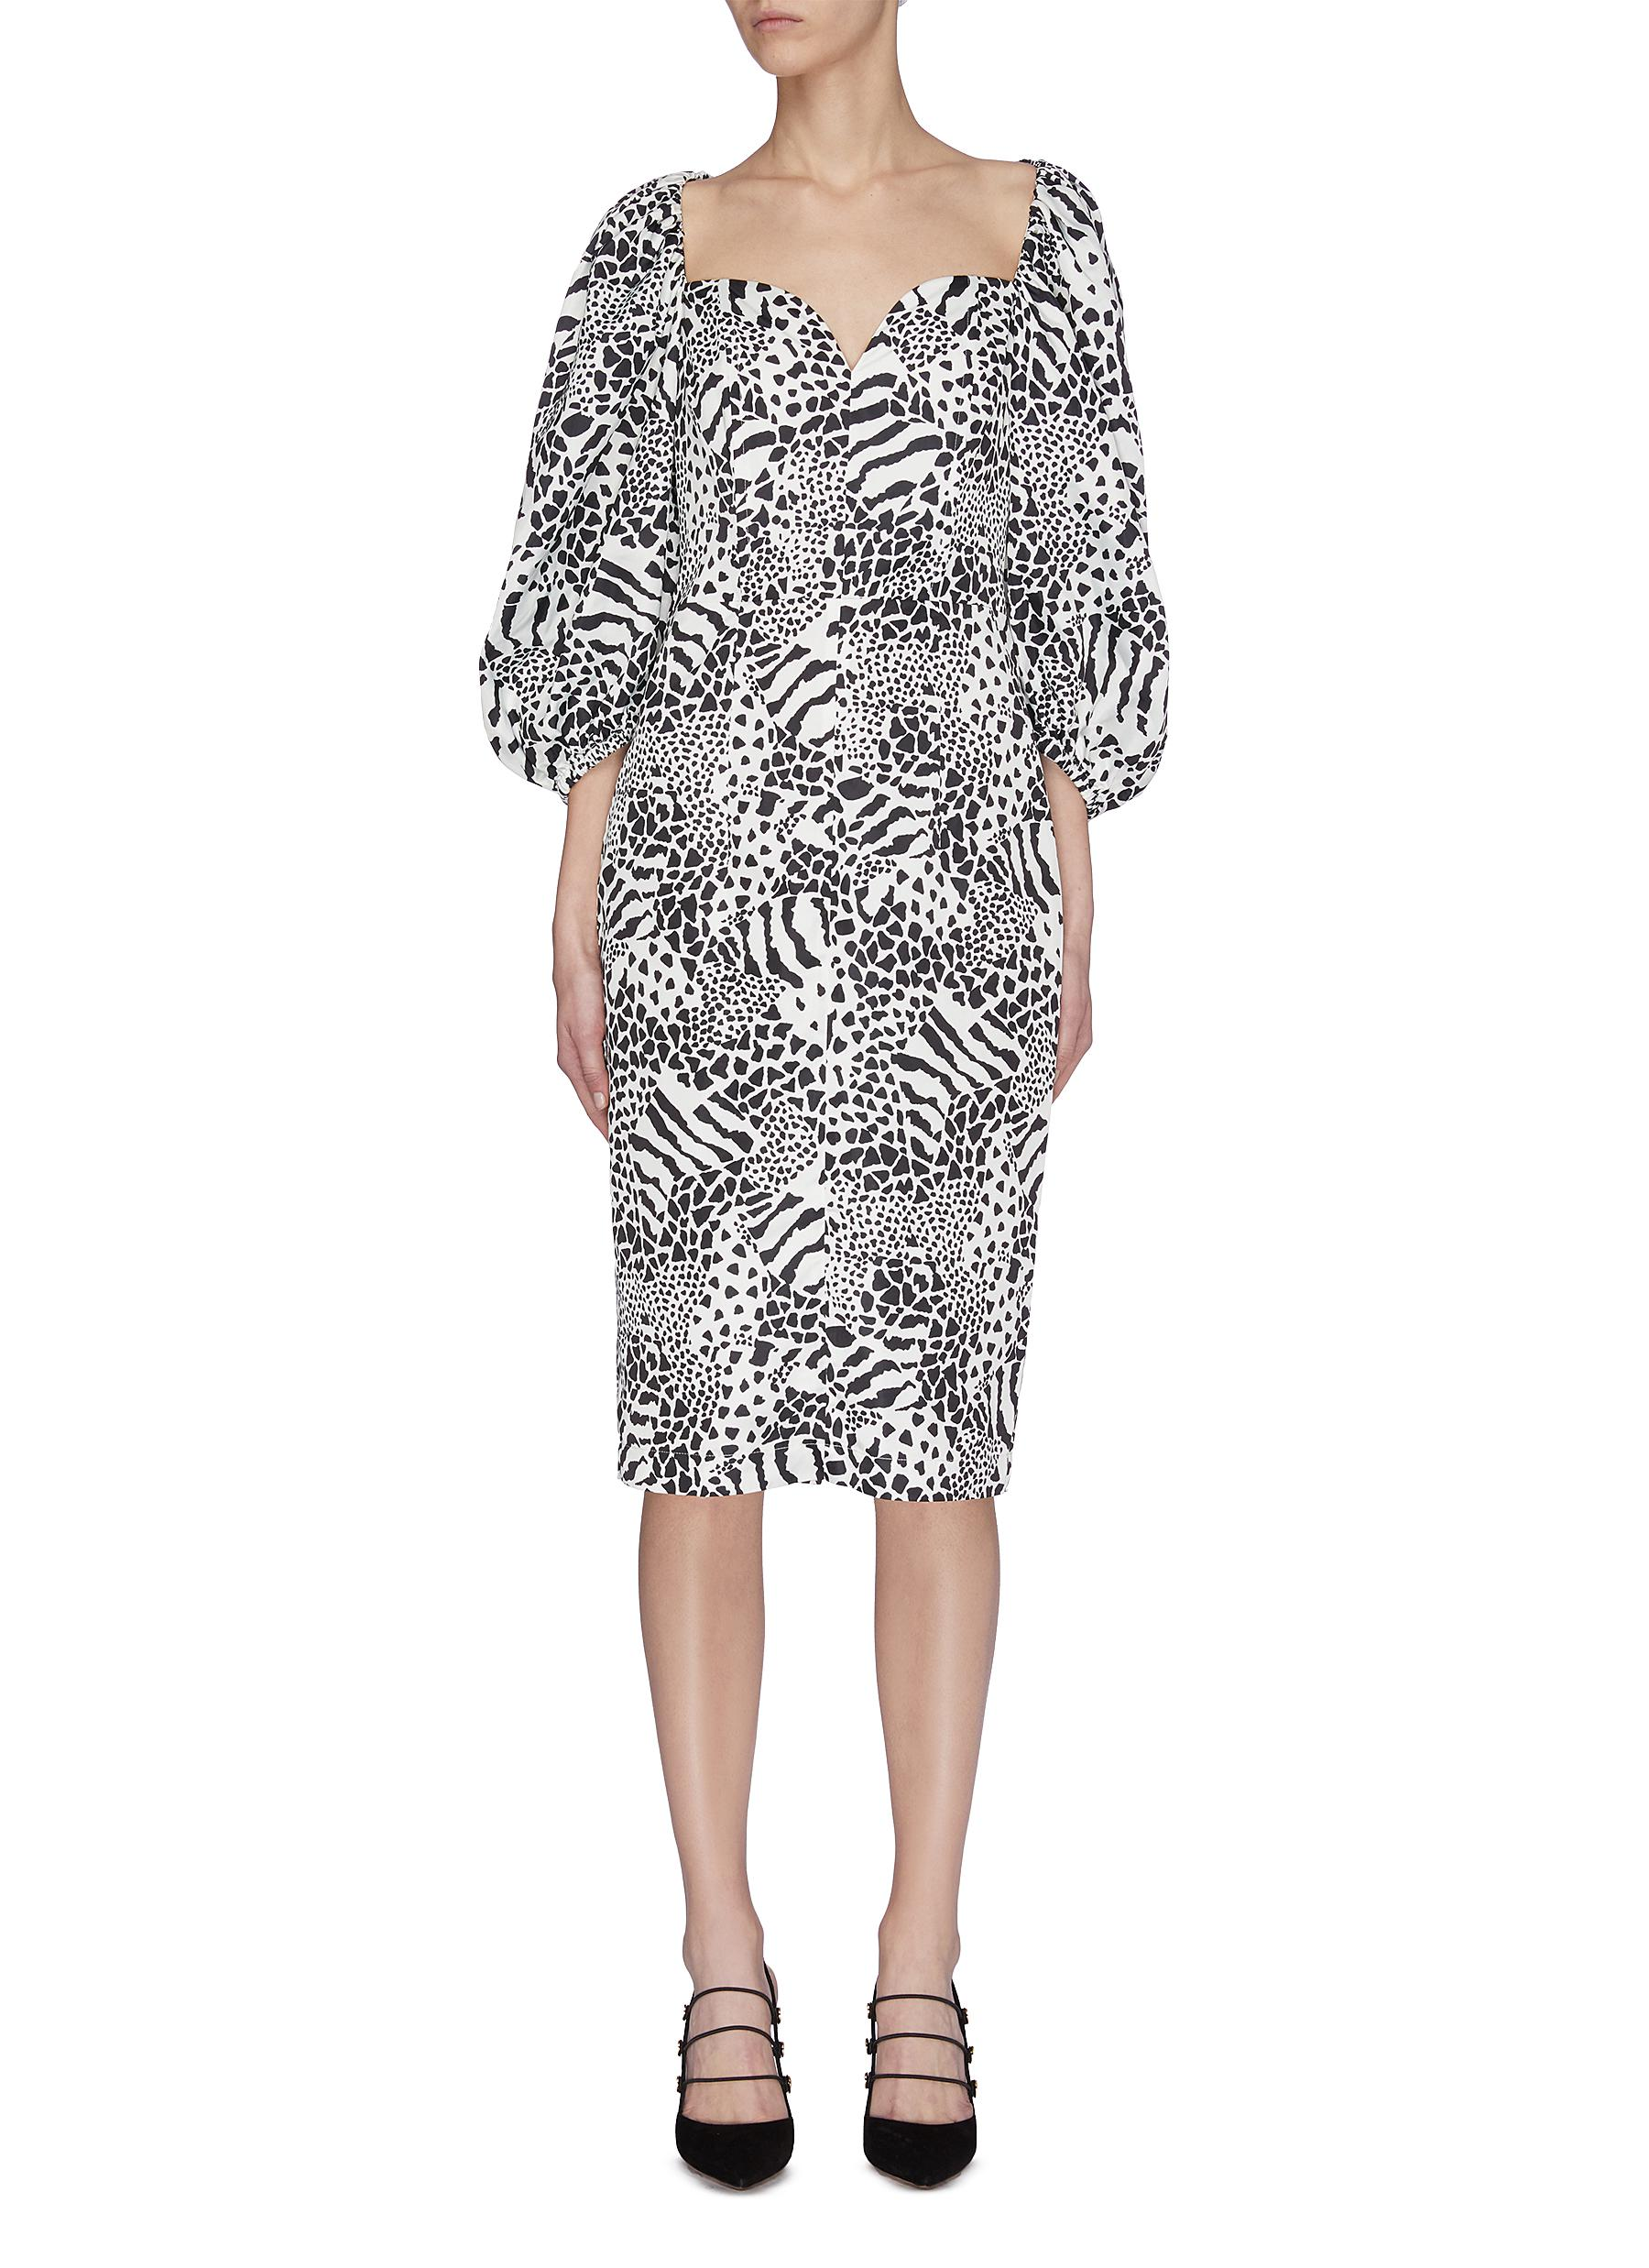 Buy Rotate Dresses 'Irina' graphic print dress